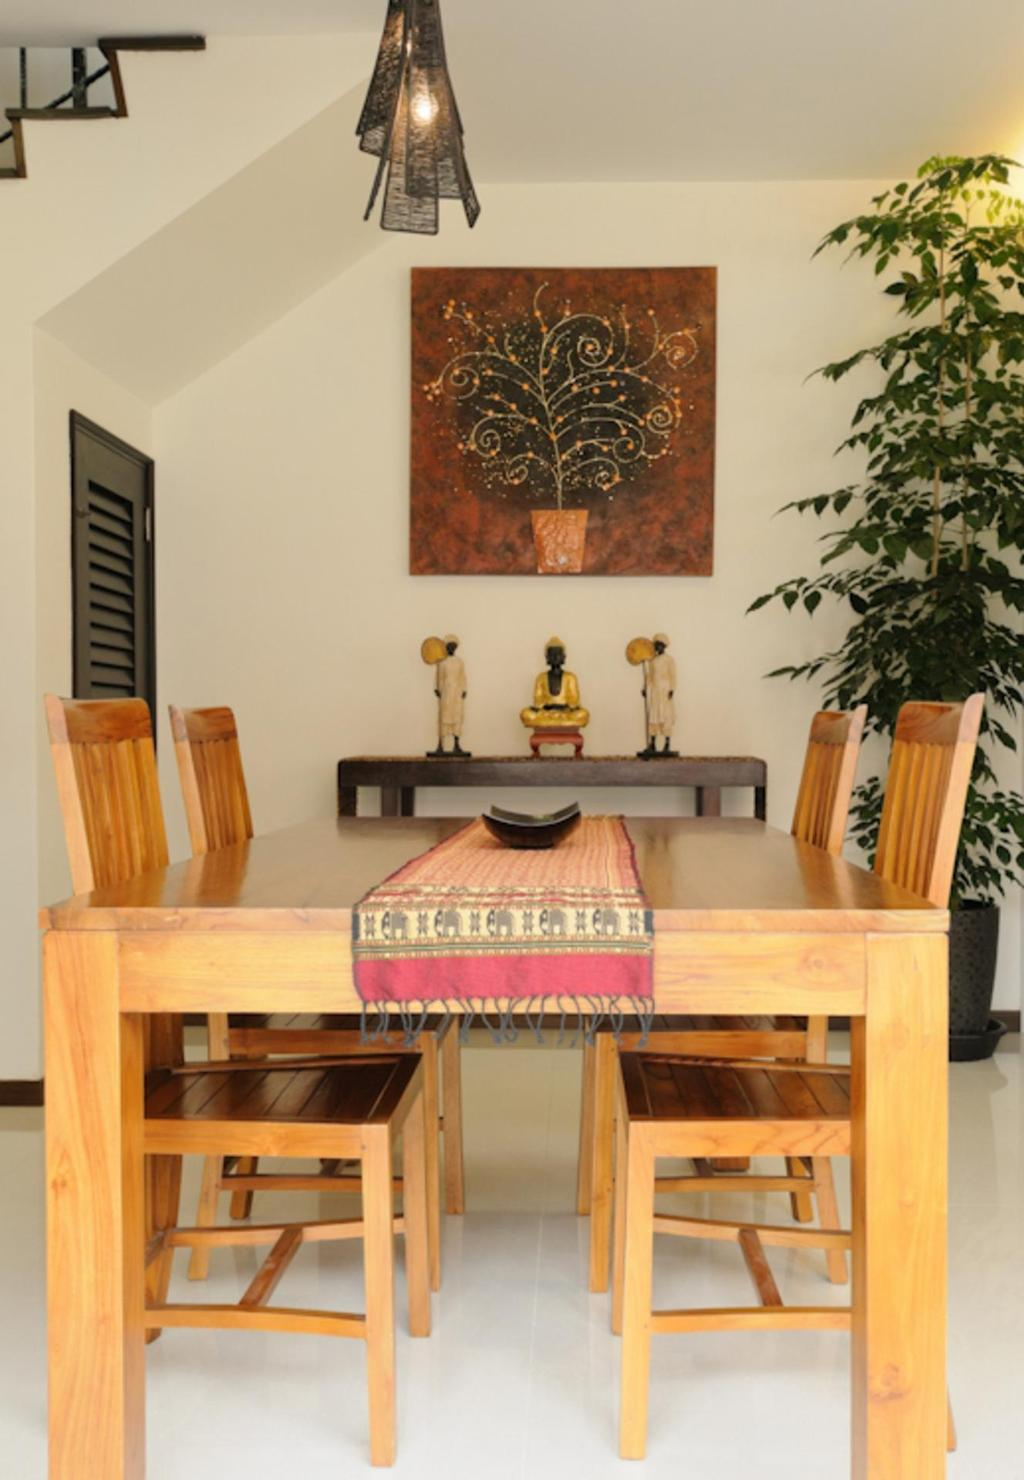 Traditional, Landed, Dining Room, Butterfly Avenue, Interior Designer, Icon Interior Design, Hanging Light, Pendant Light, Dining Table, Table, Chair, Display Unit, Sculpture, Painting, Plants, Woodwork, Wood Laminate, Wood, Laminate, Flora, Jar, Plant, Potted Plant, Pottery, Vase, Woven, Altar, Architecture, Building, Furniture, Indoors, Interior Design, Room